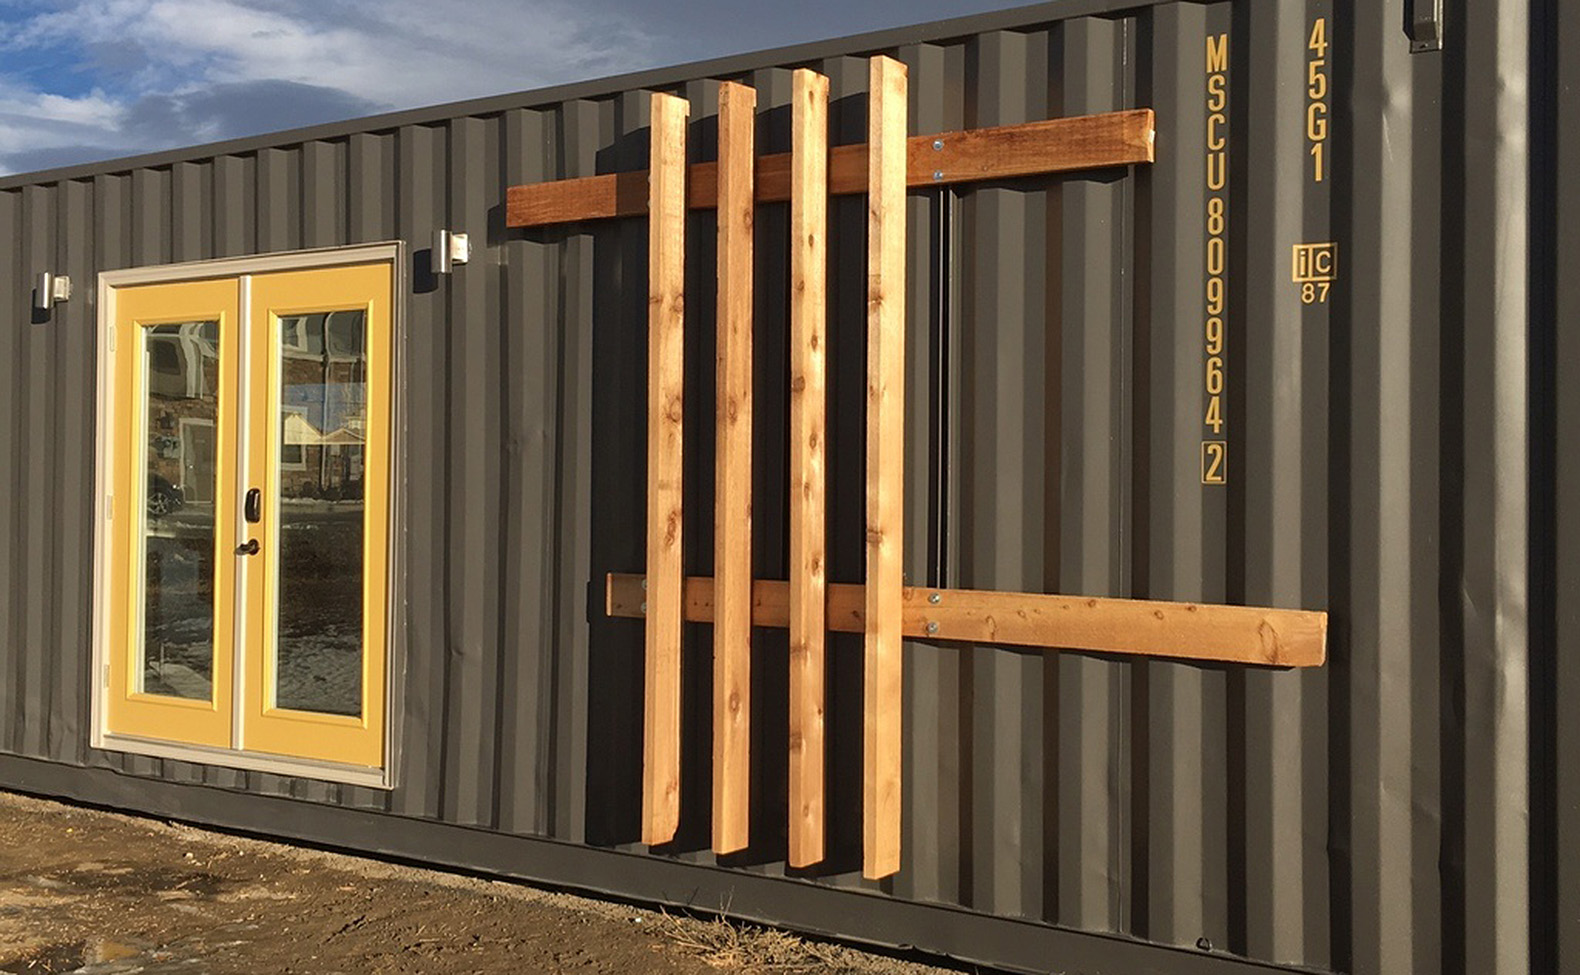 320 Square Foot Tiny Container Home Packs A Surprising